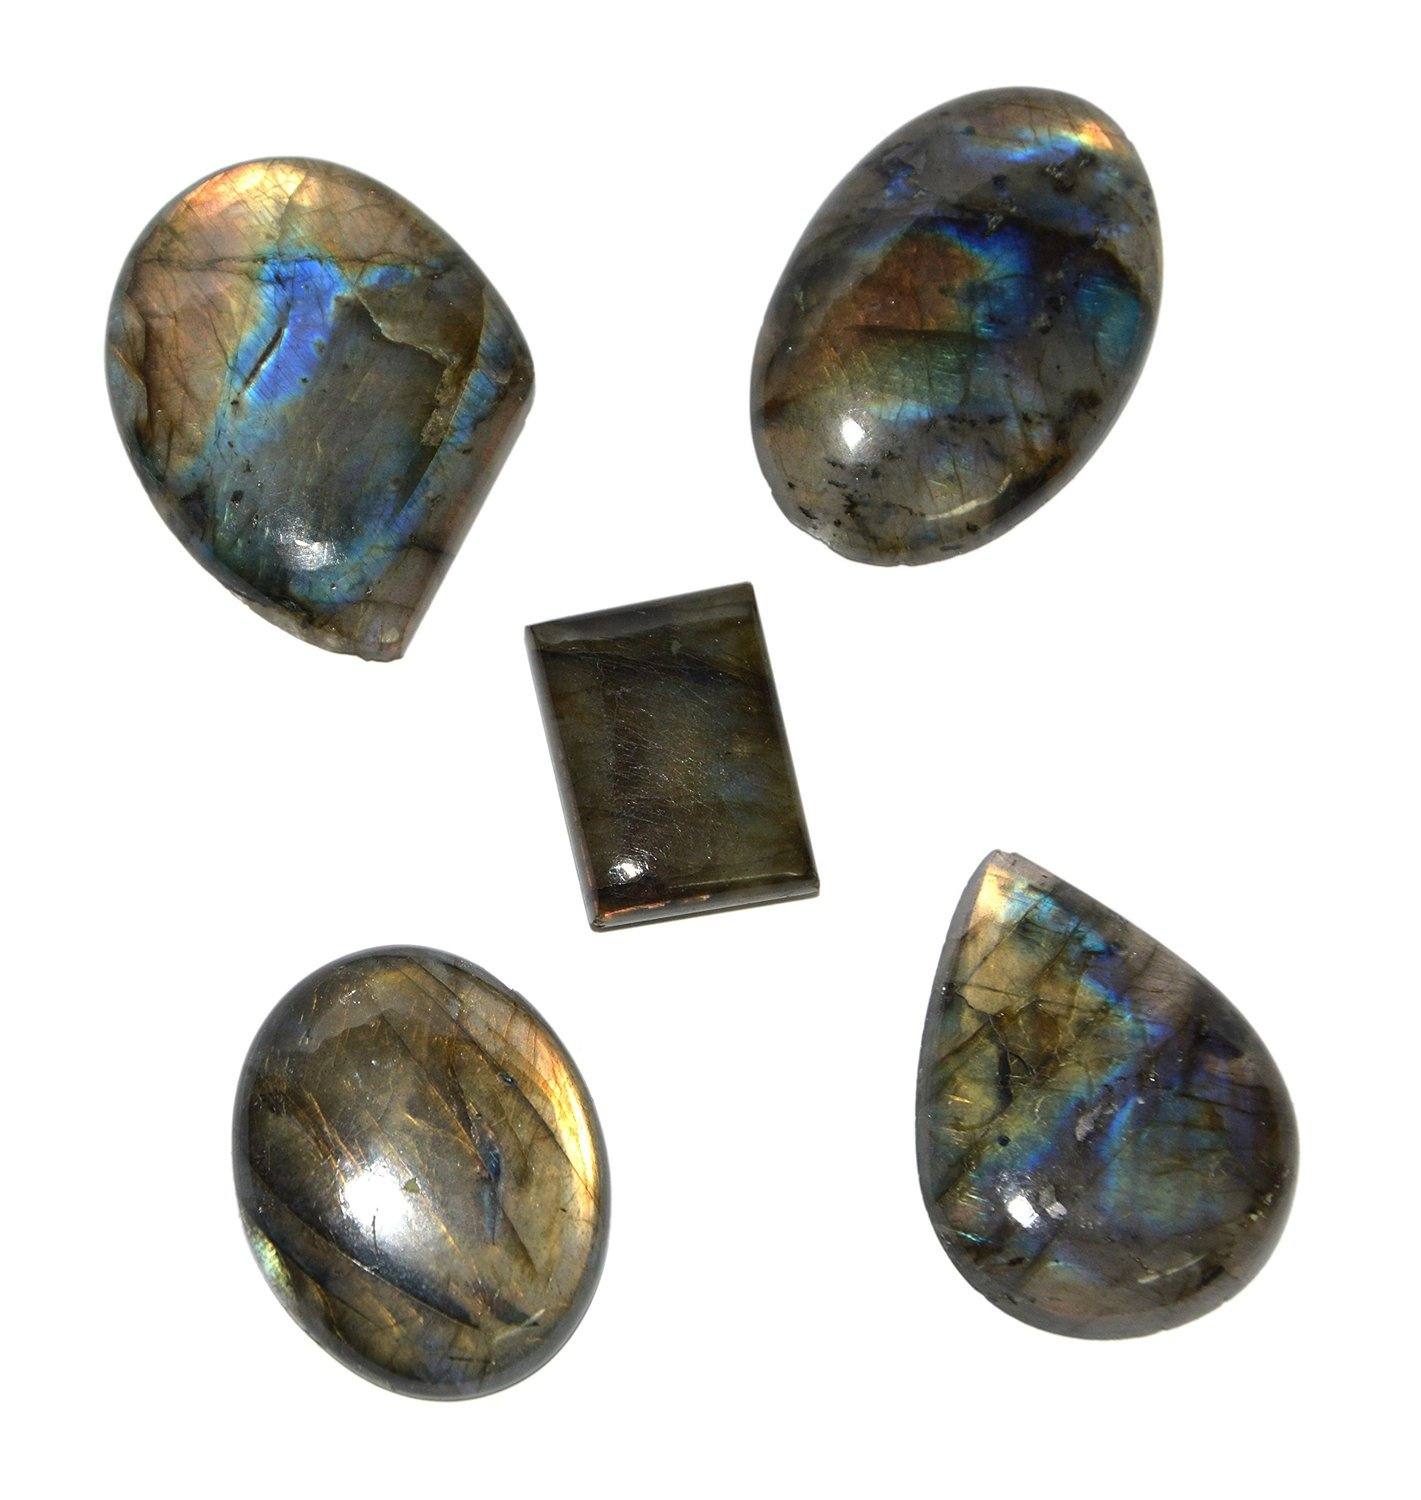 Aatm Healing Gemstone Labradorite Crystal Cabochon Stone (Set Of 5 Stones) (Stone of transformation) Aatm Collection CNGPC-14